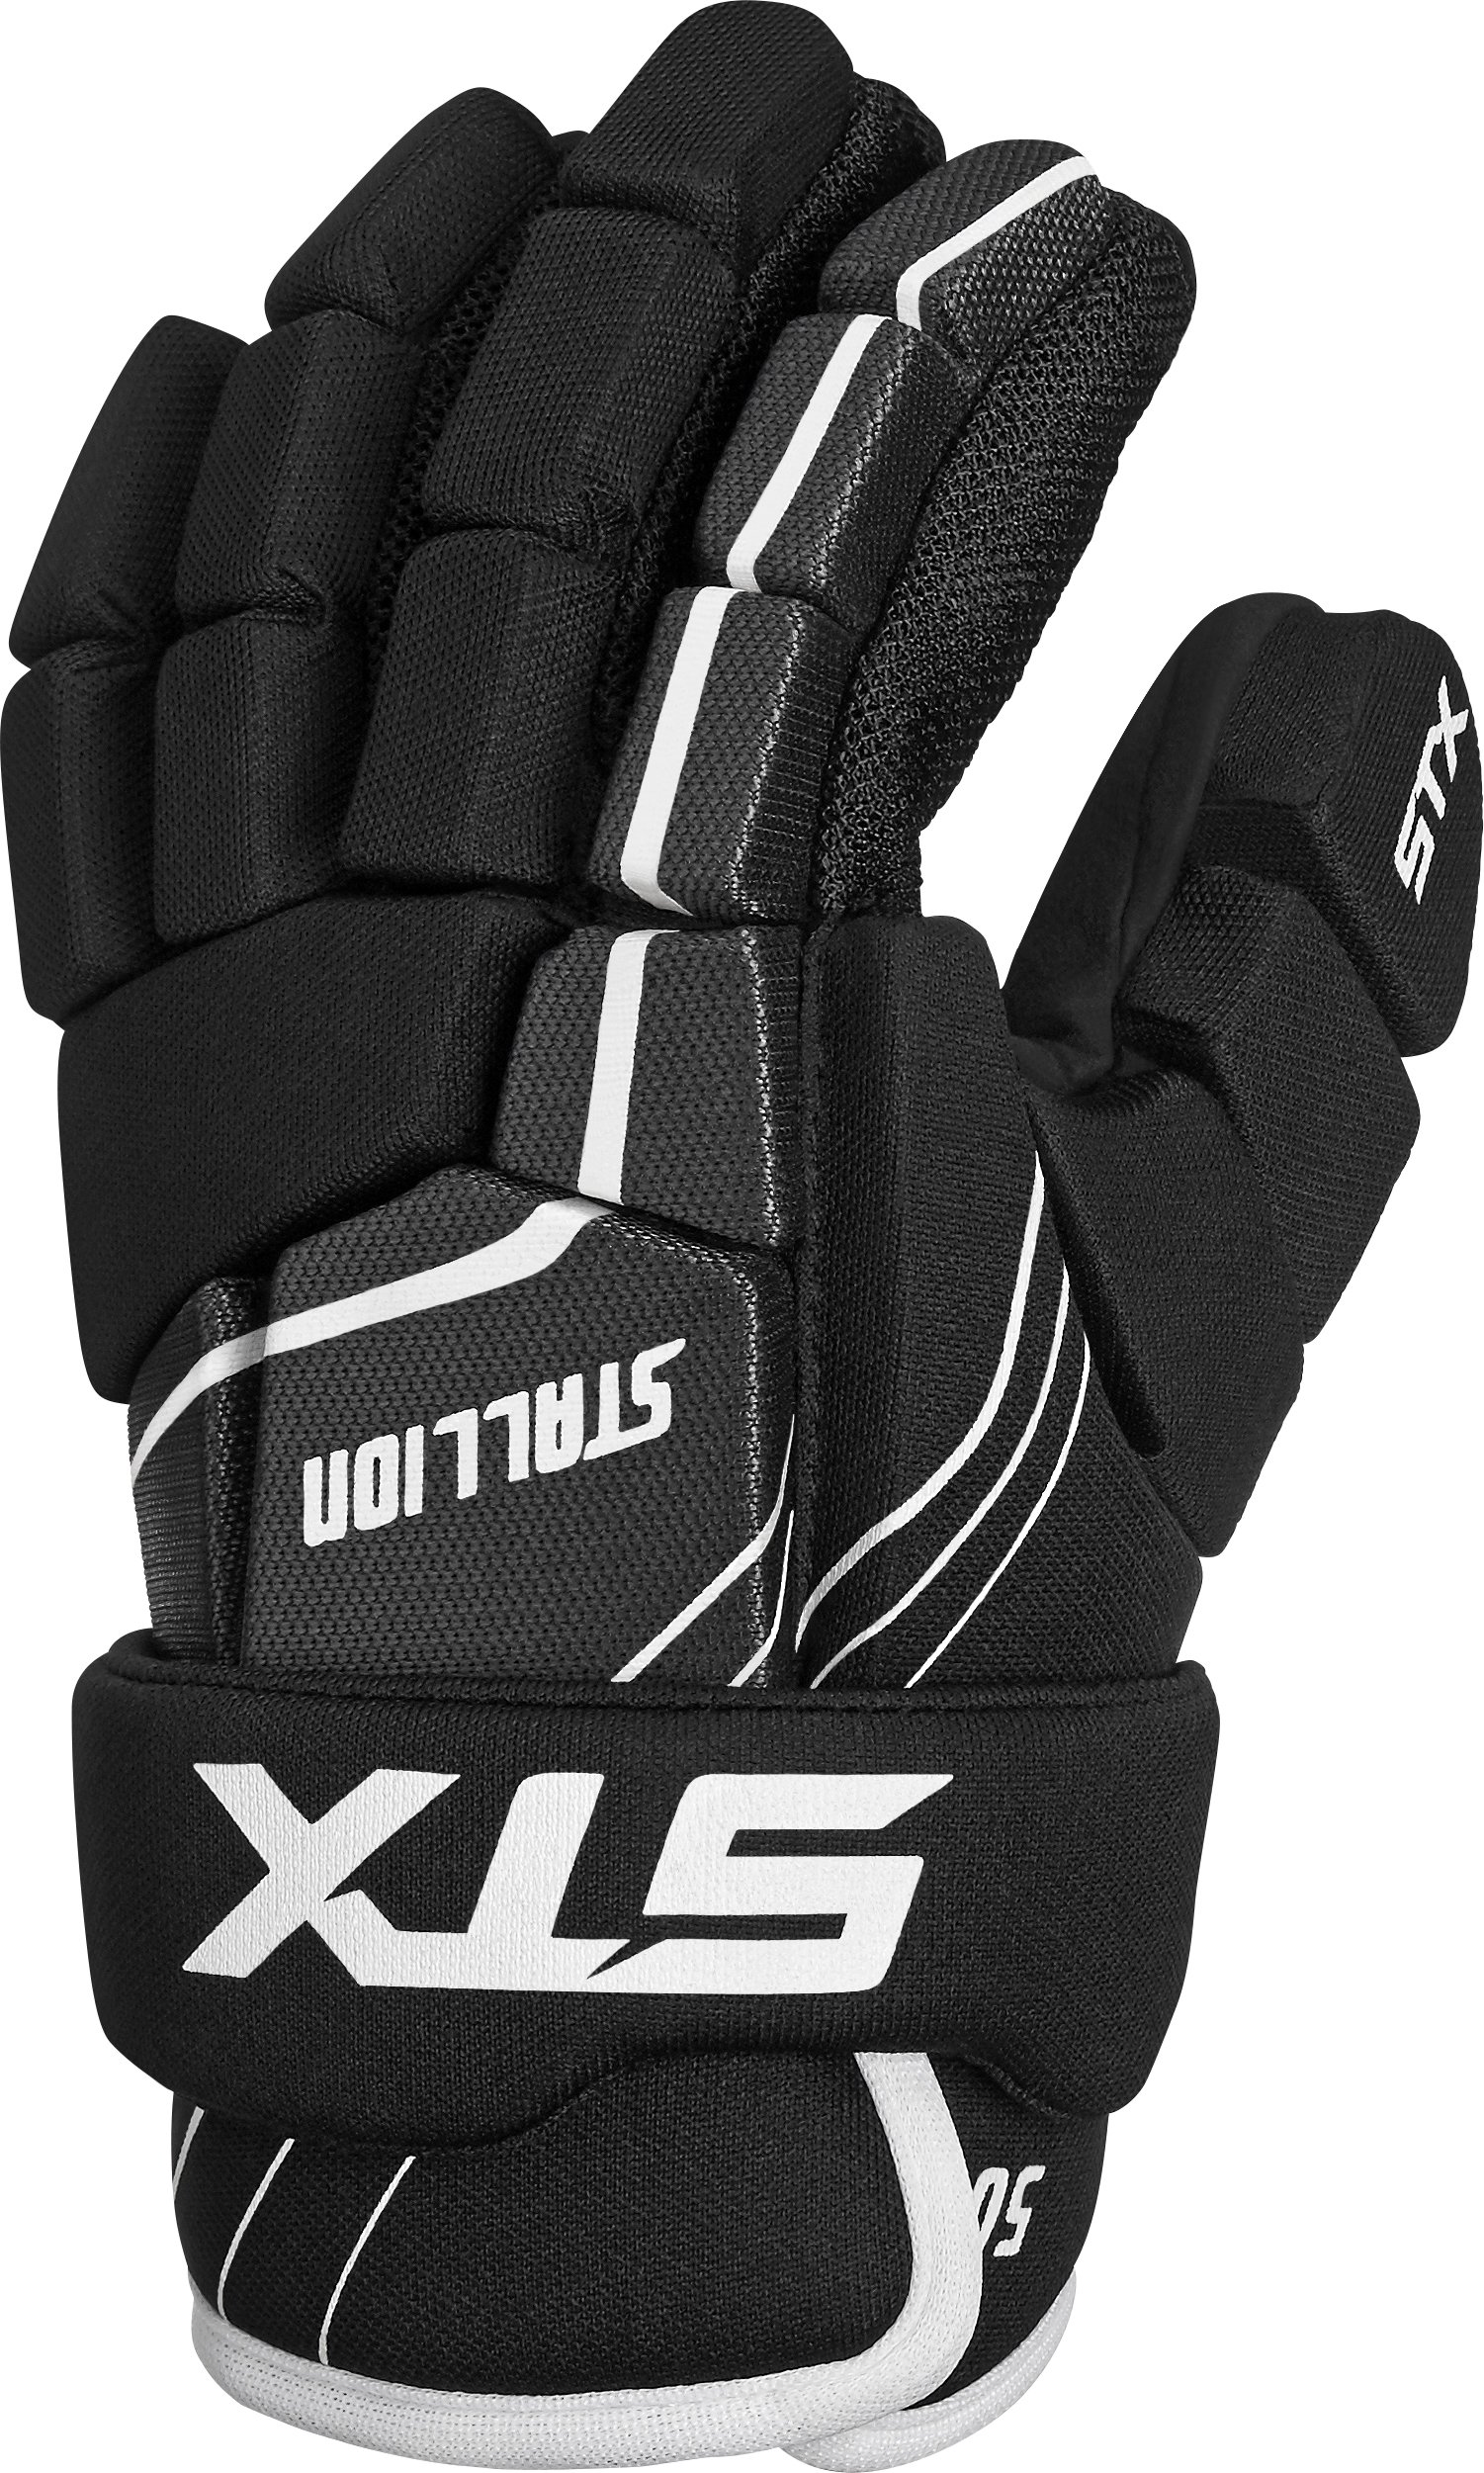 STX Lacrosse Stallion 50 Youth Gloves, Black, X-Small